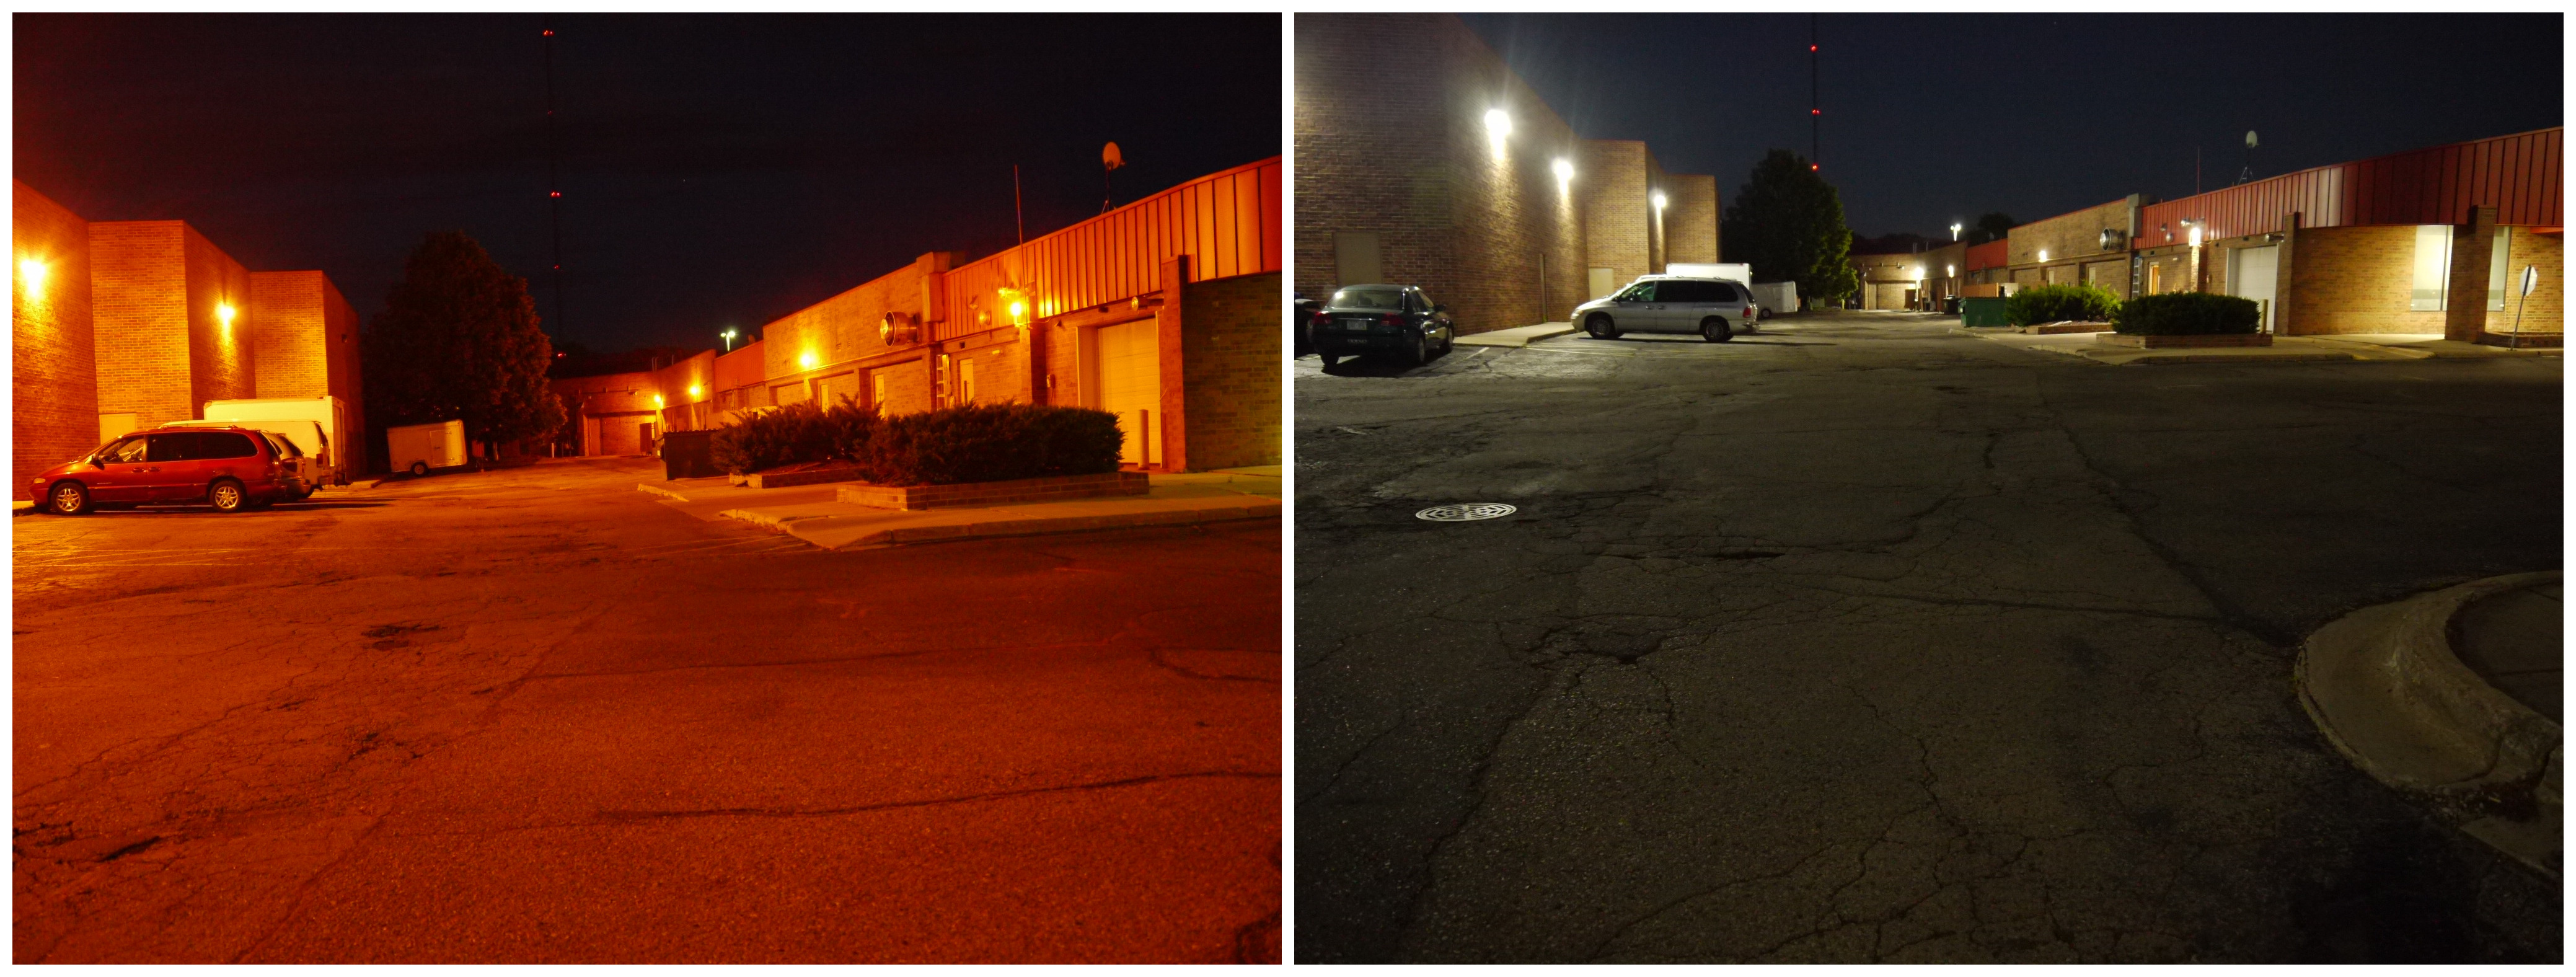 LED Lighting Transformation